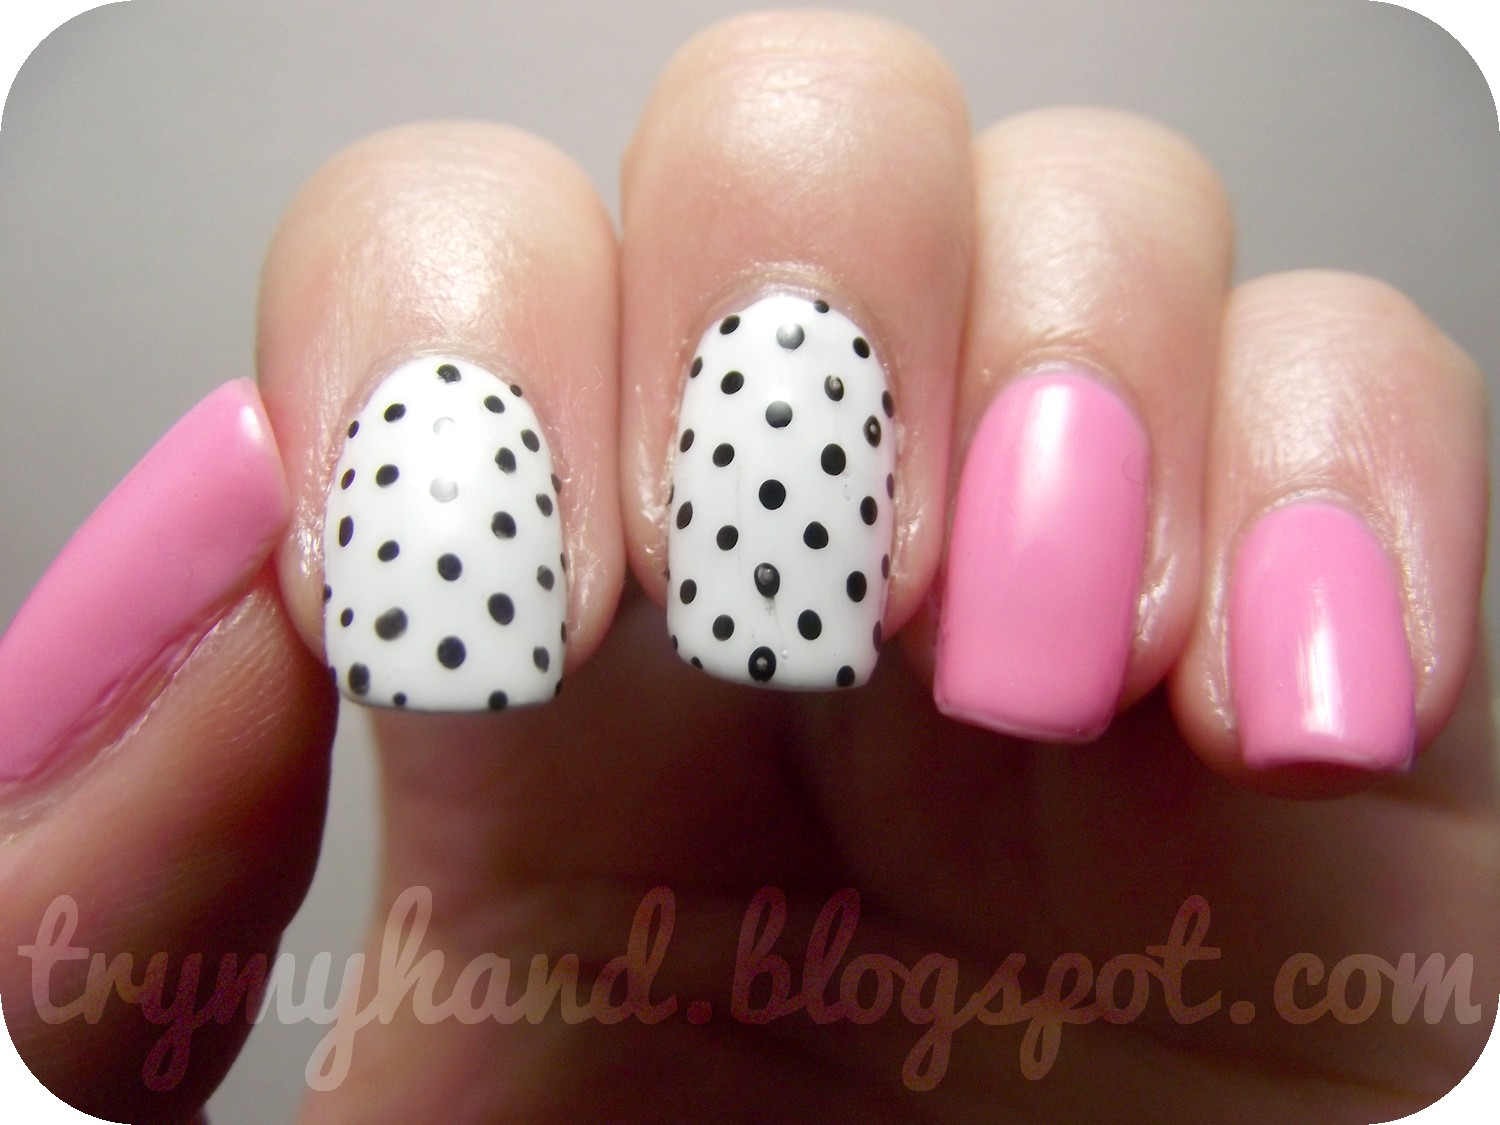 Try My Hand: White, Pink and Black Spots